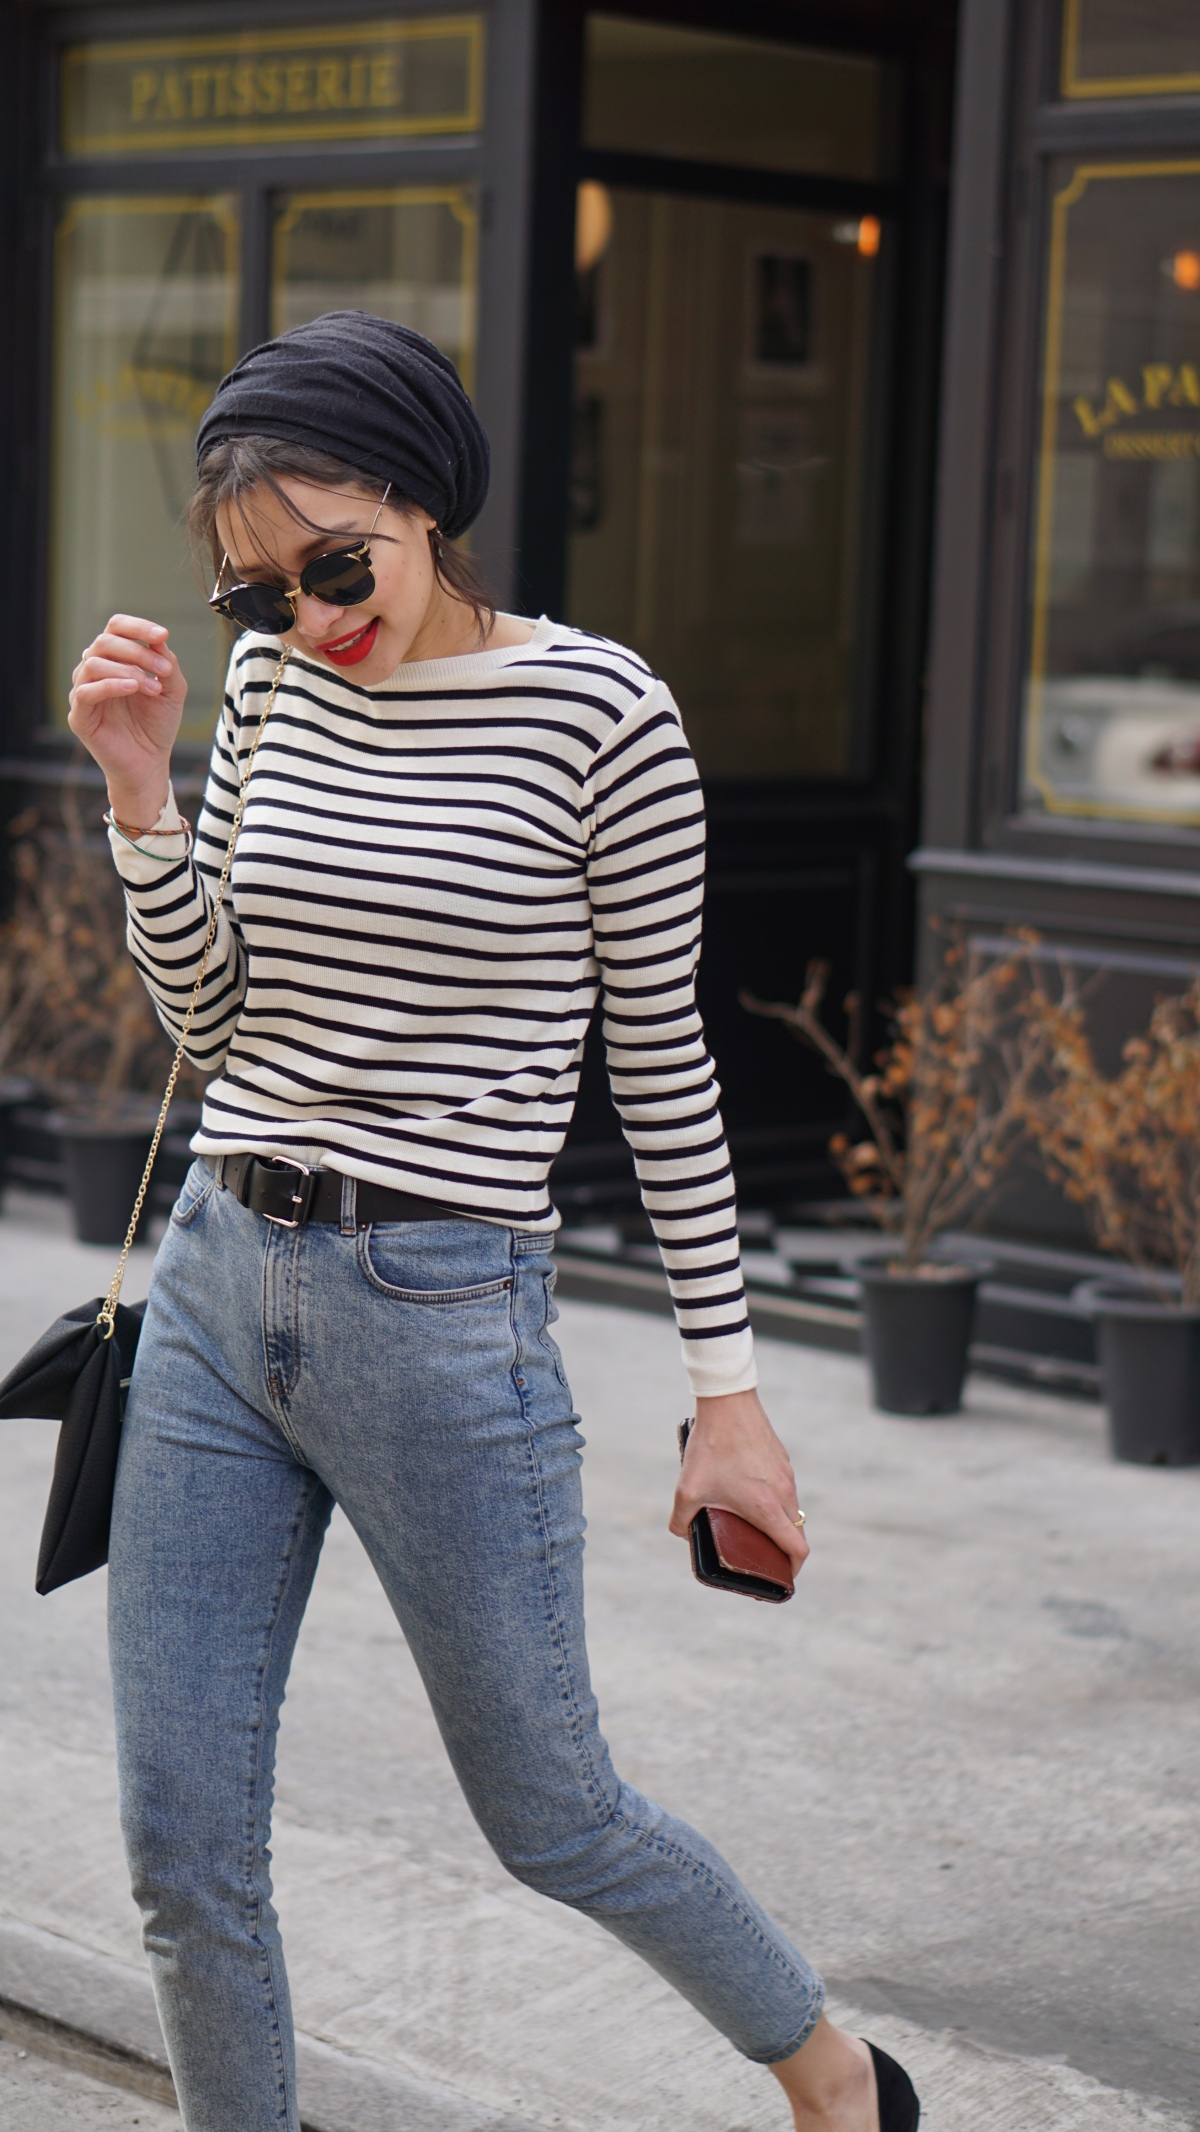 French_outfit_woman_crossing_street_breton_stripe_top_blue_jeans_red_lips